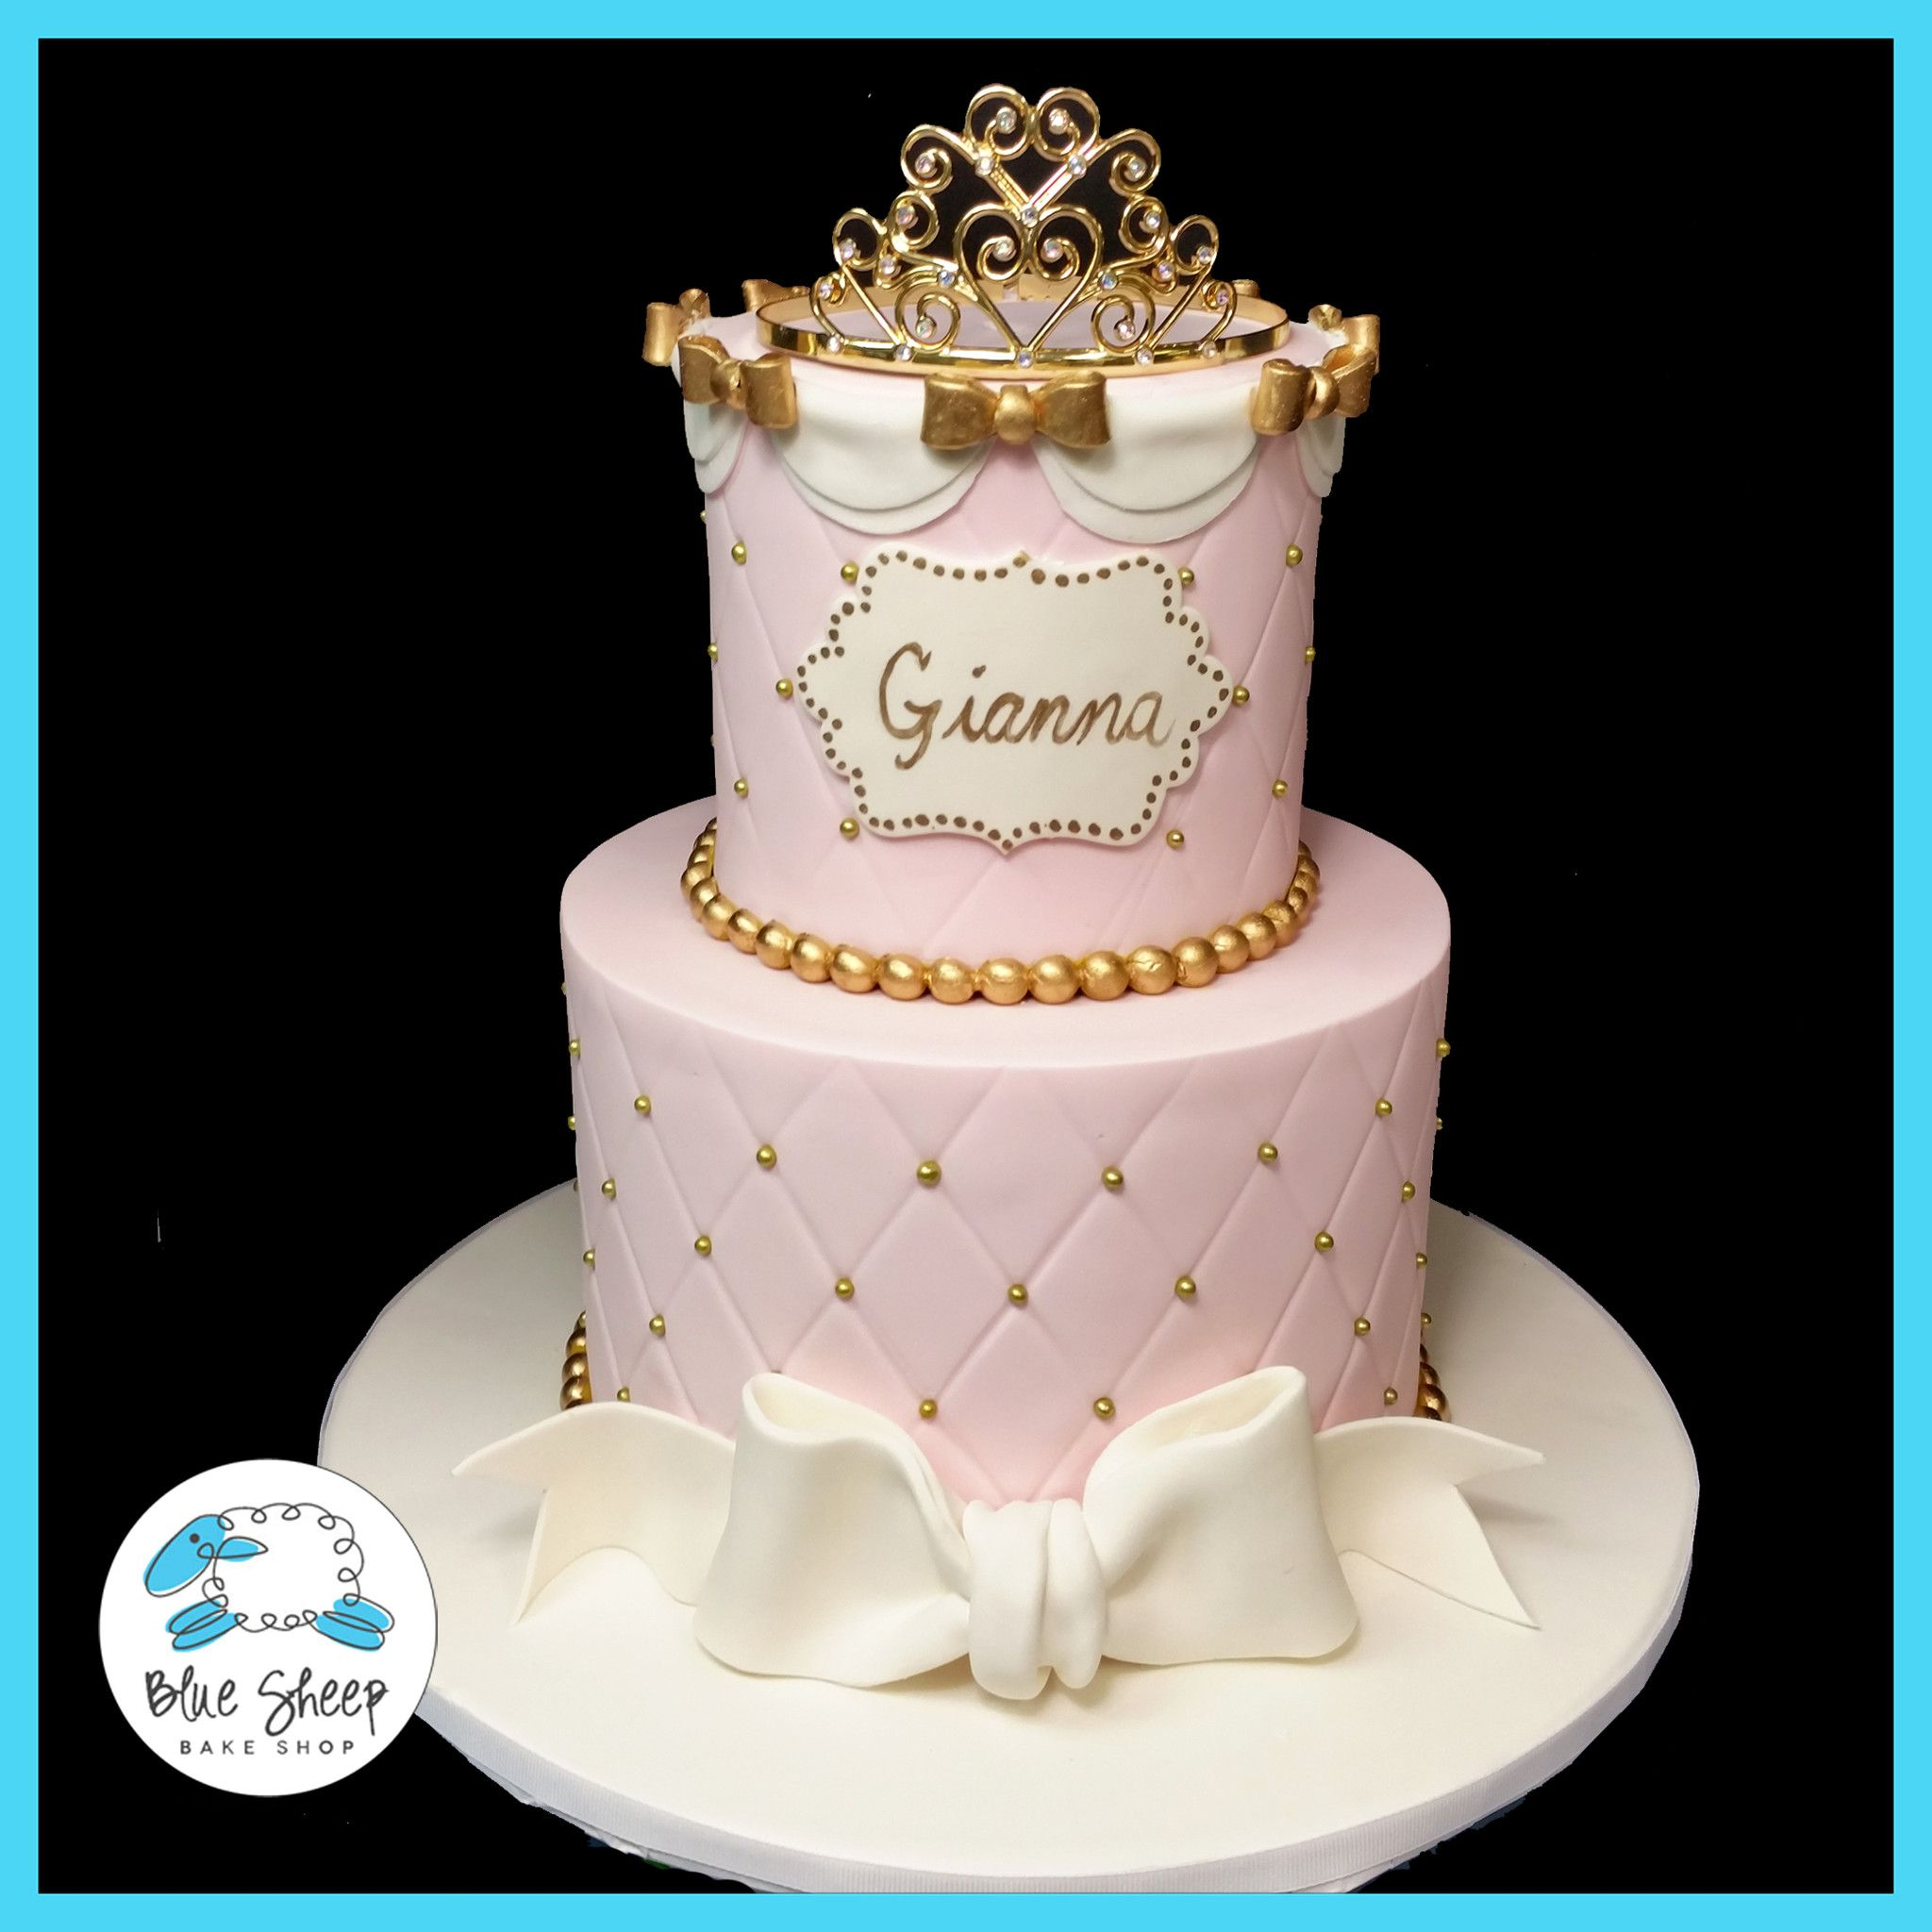 Strange Giannas Princesspink And Gold 1St Birthday Cake 1St Birthday Personalised Birthday Cards Veneteletsinfo